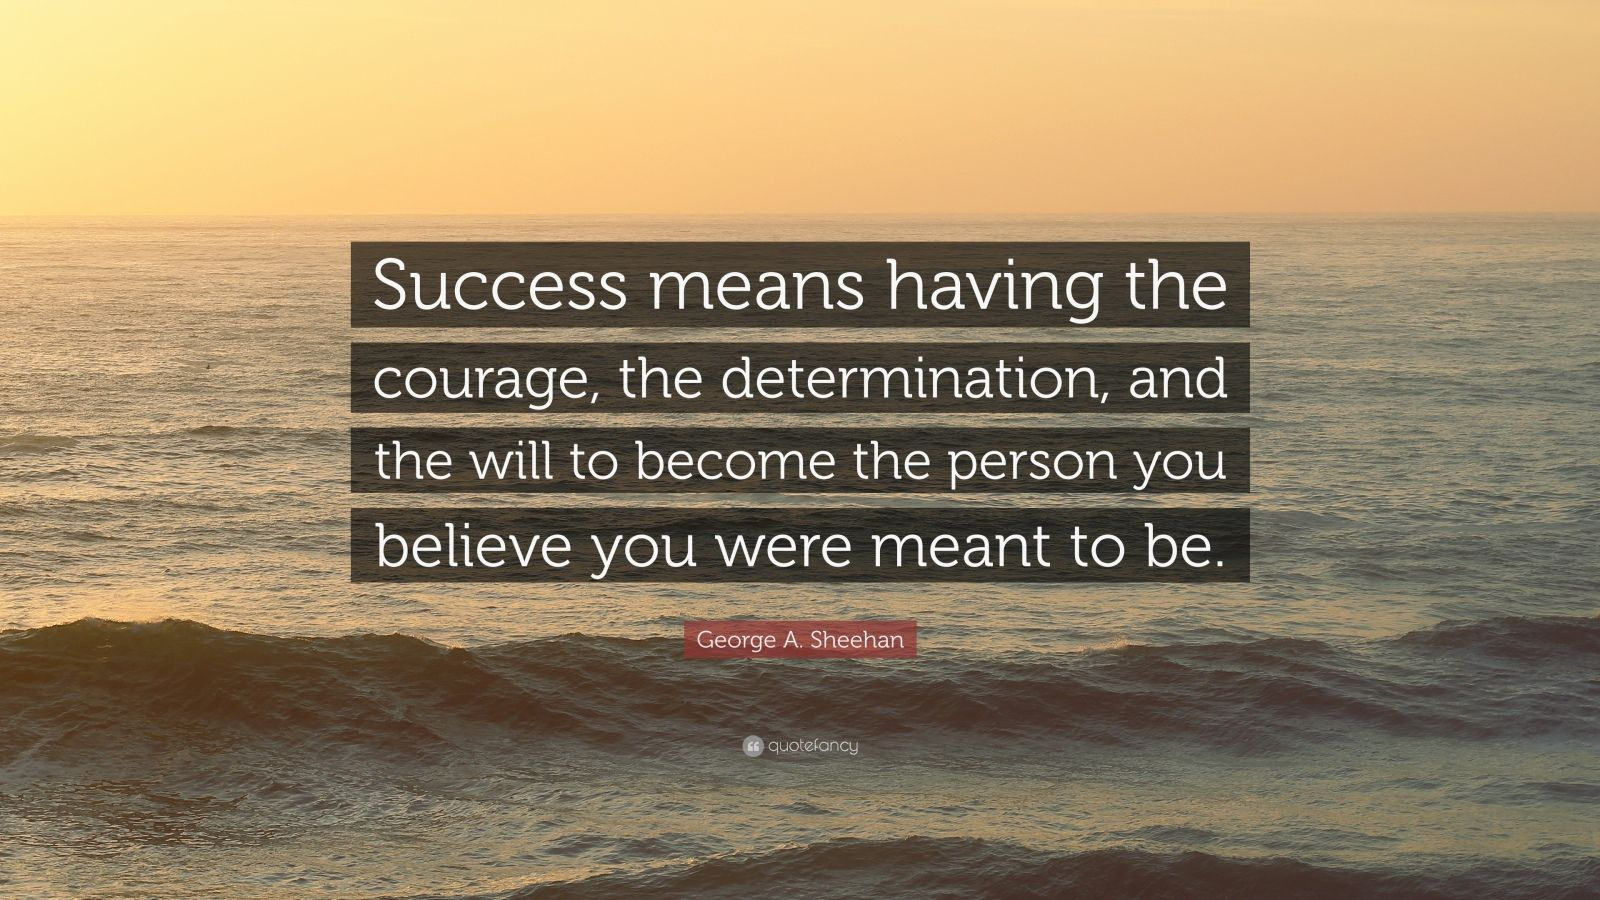 "George A. Sheehan Quote: ""Success means having the courage, the determination, and the will to become the person you believe you were meant to be."""